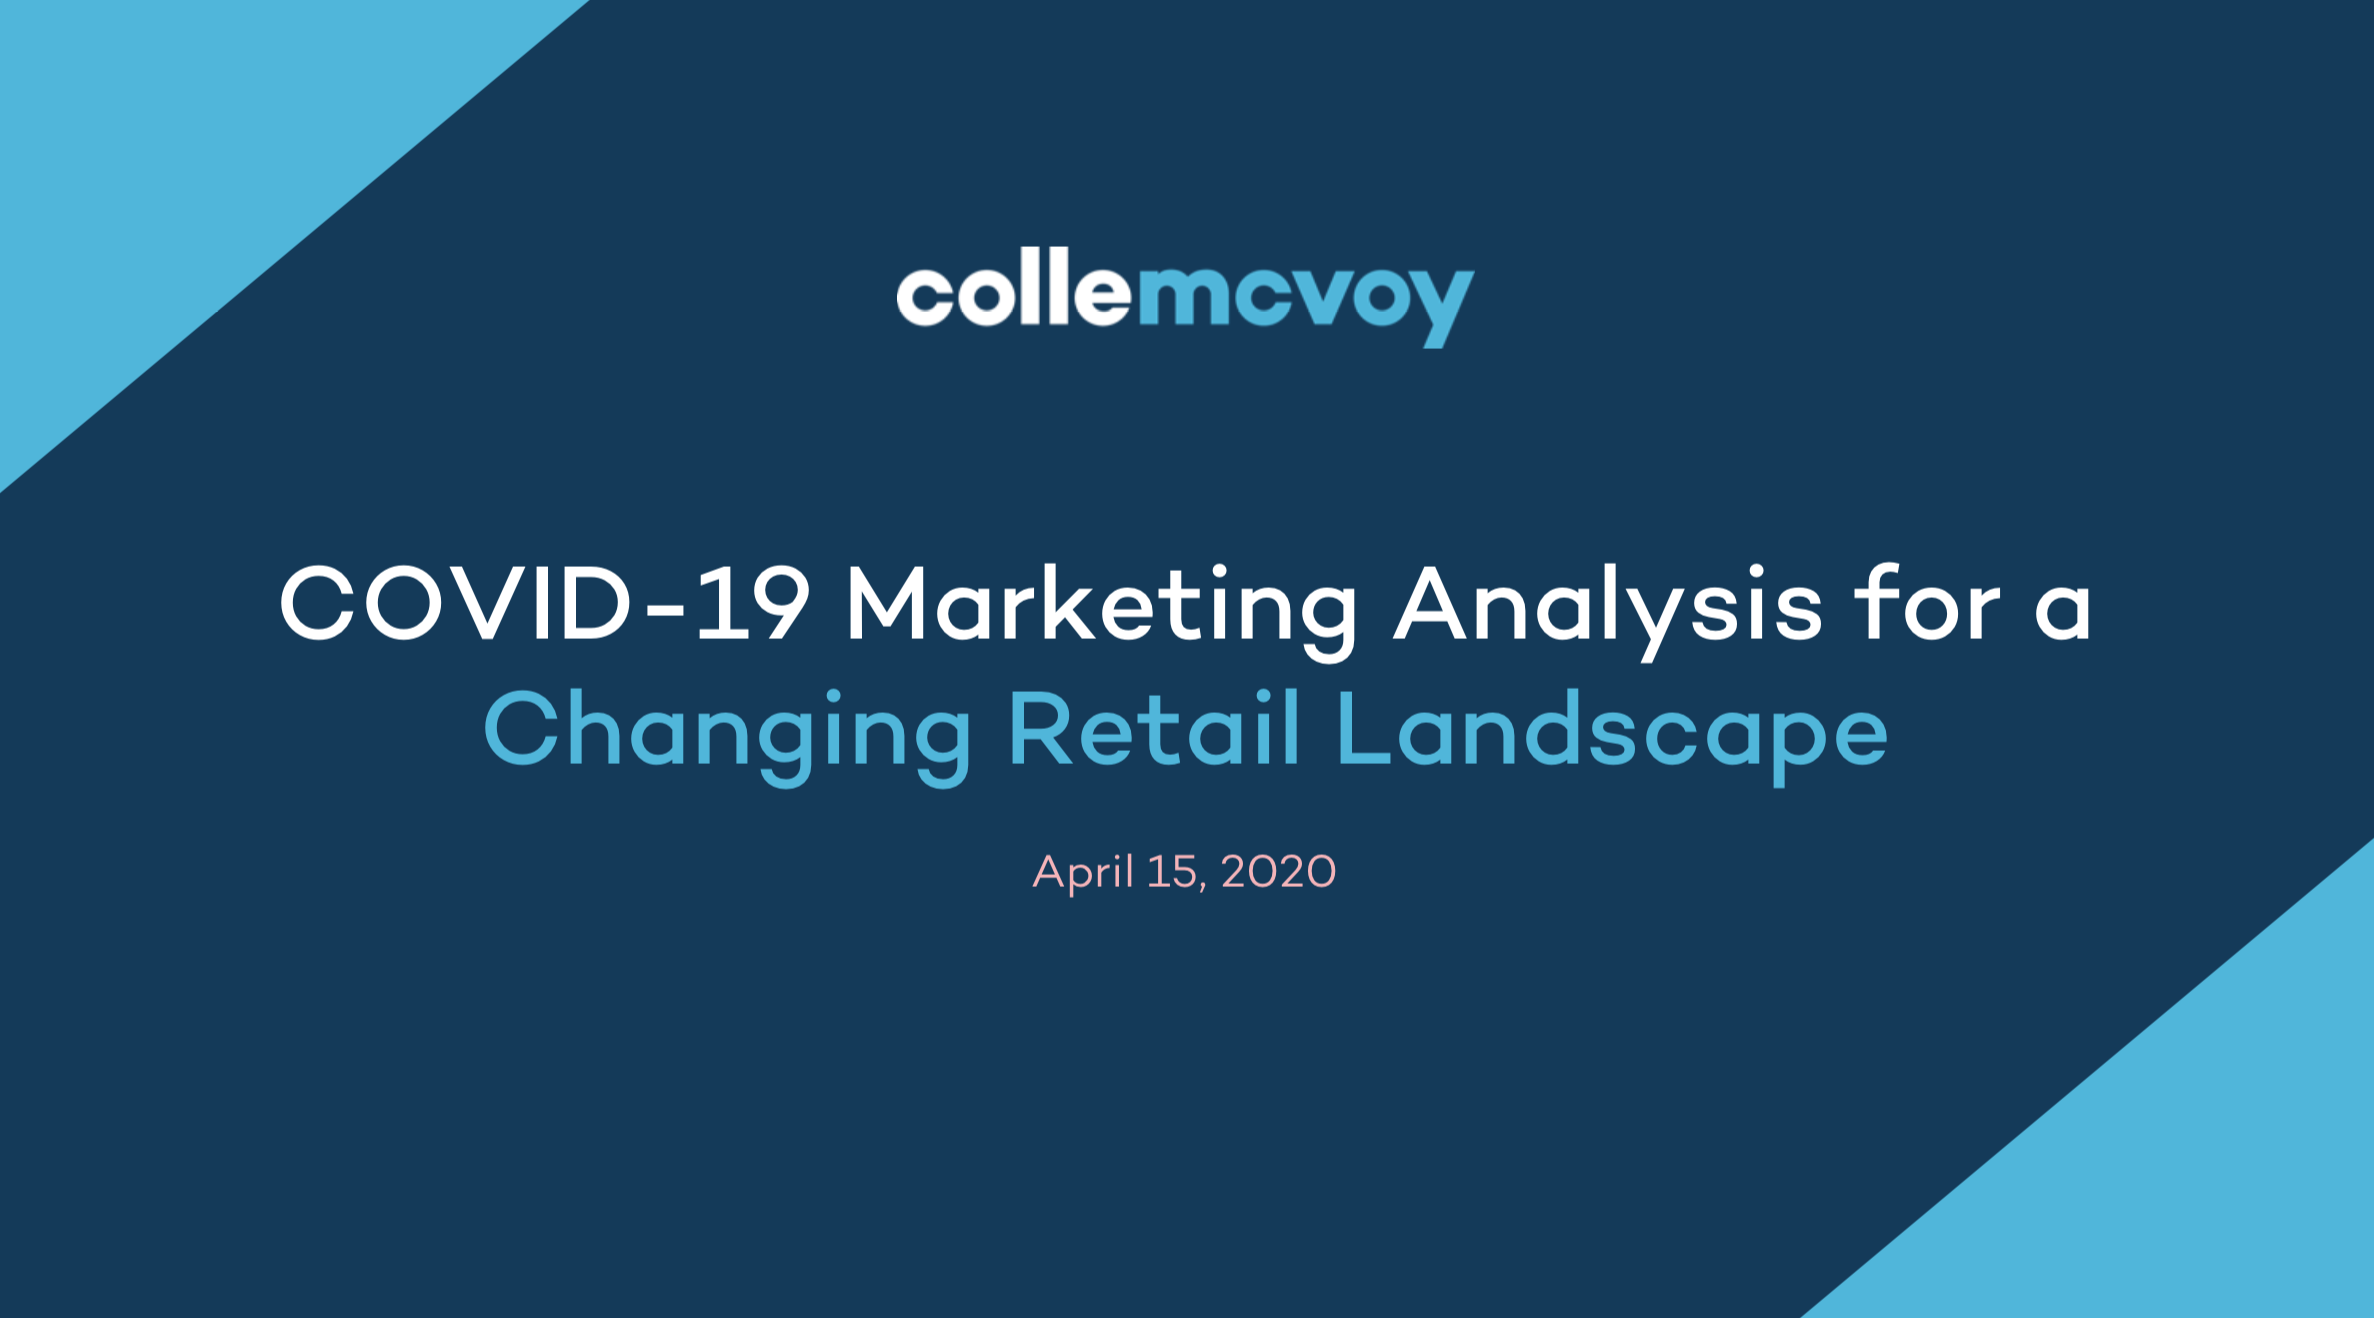 Covid-19 Marketing Analysis for a Changing Retail Landscape thumbnail